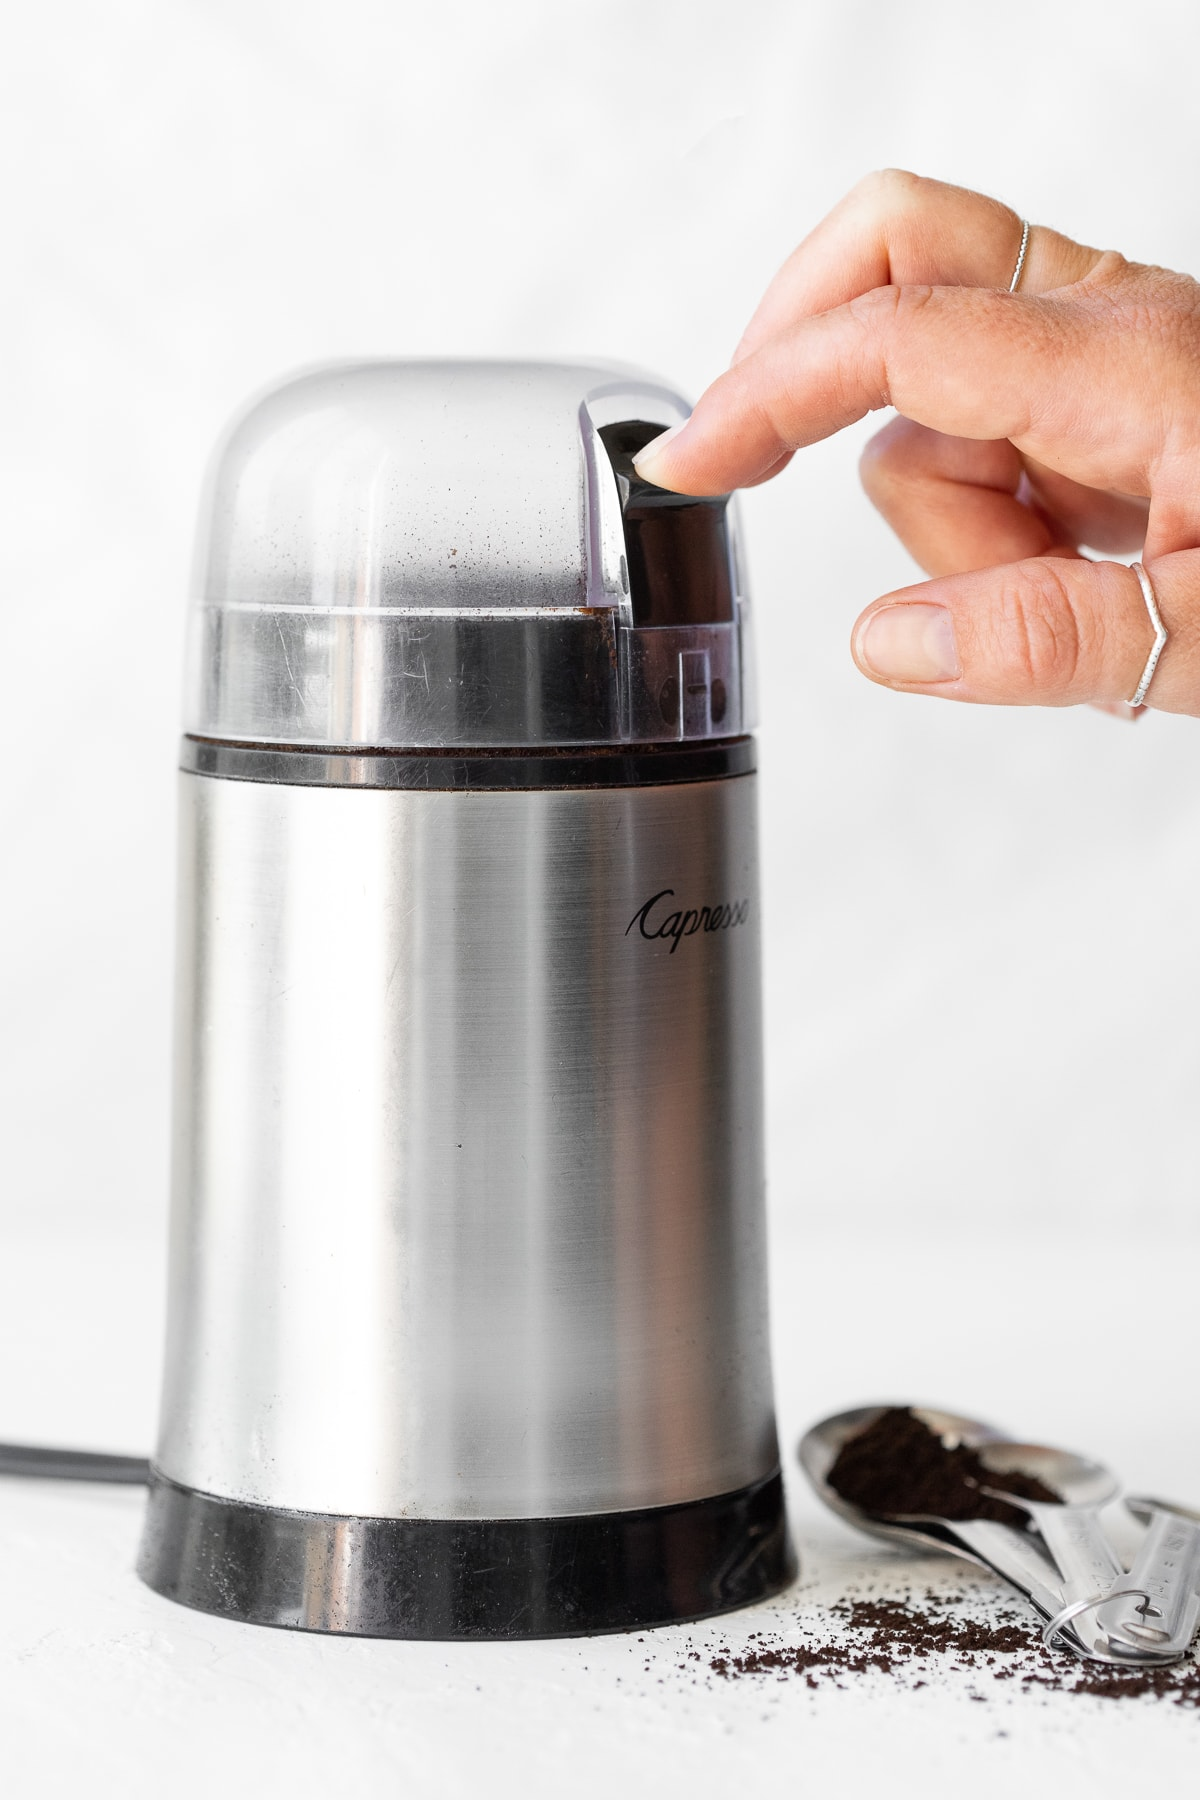 Coffee grinder being used to grind brewed and baked espresso grounds.